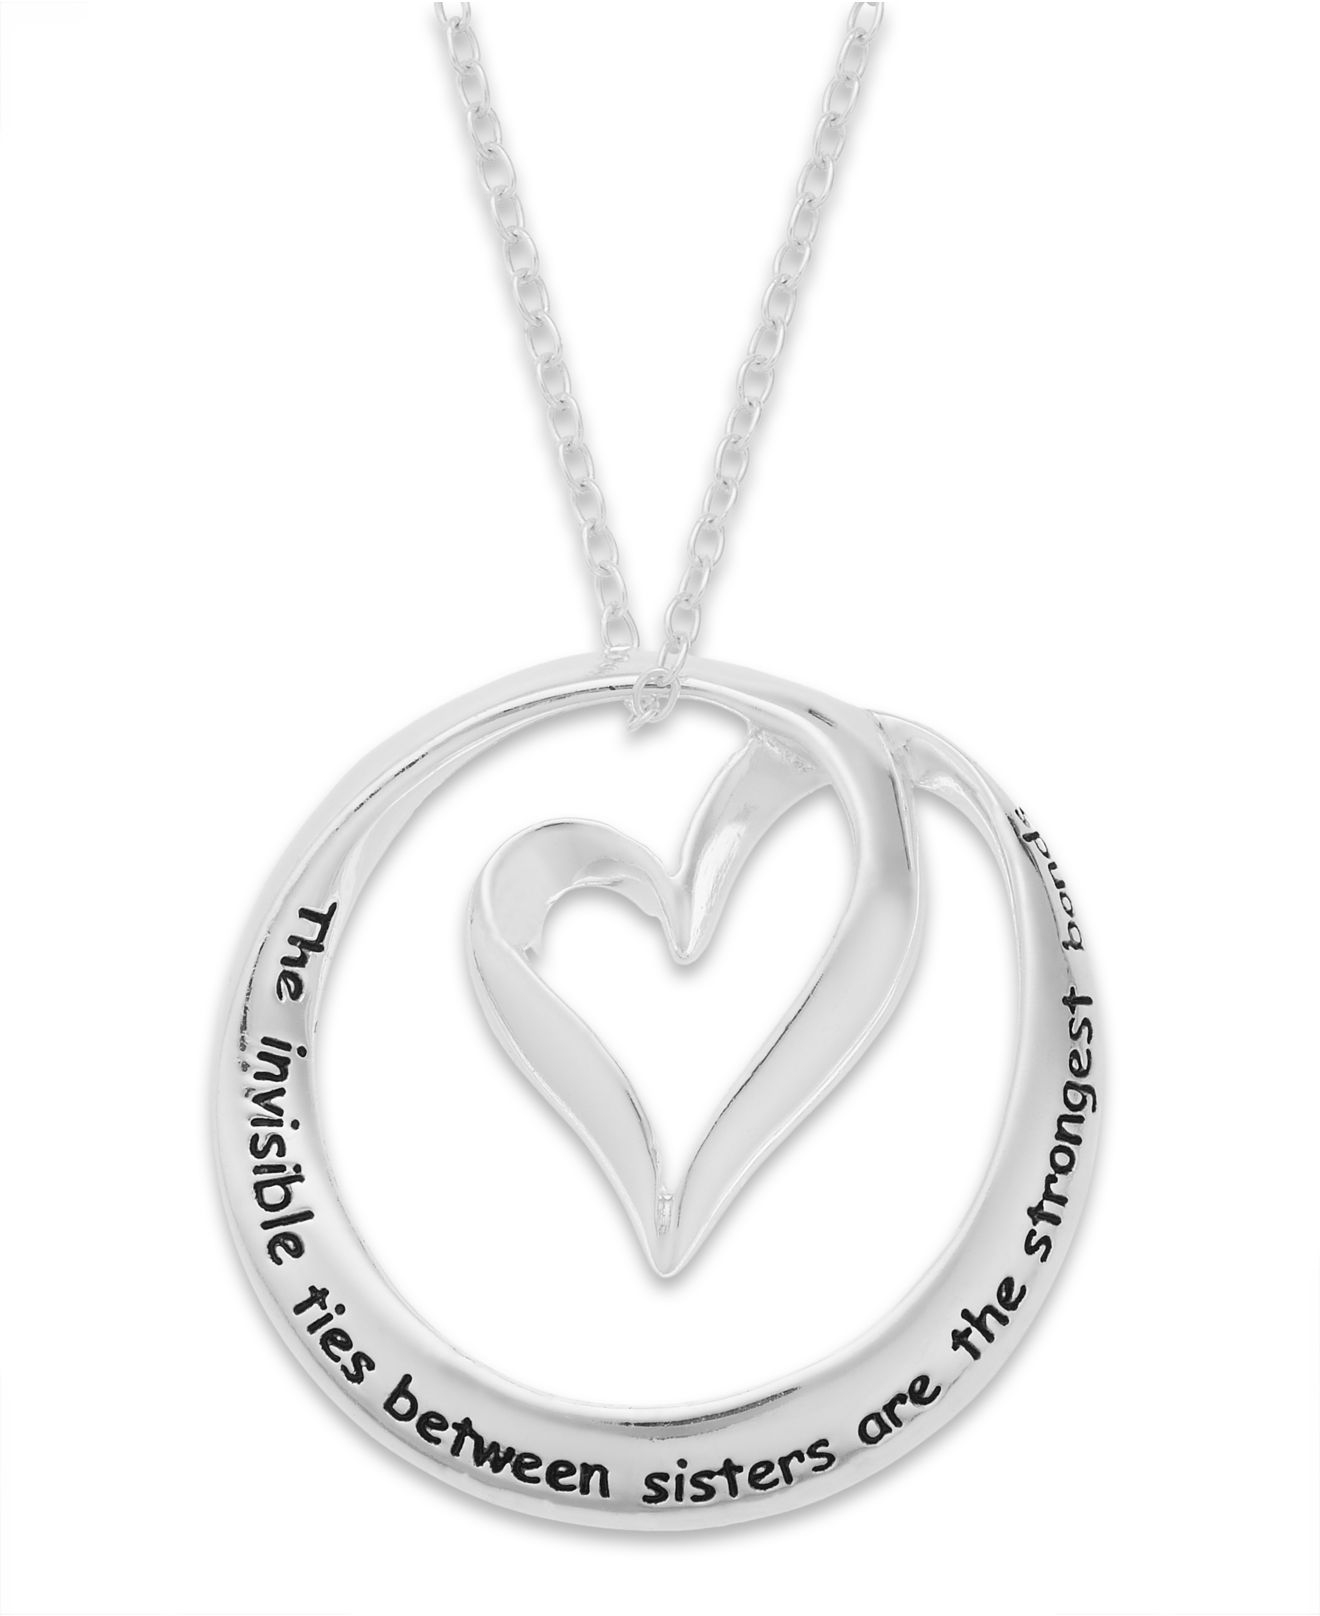 Lyst - Macy'S Inspirational Sister Heart Pendant Necklace ...